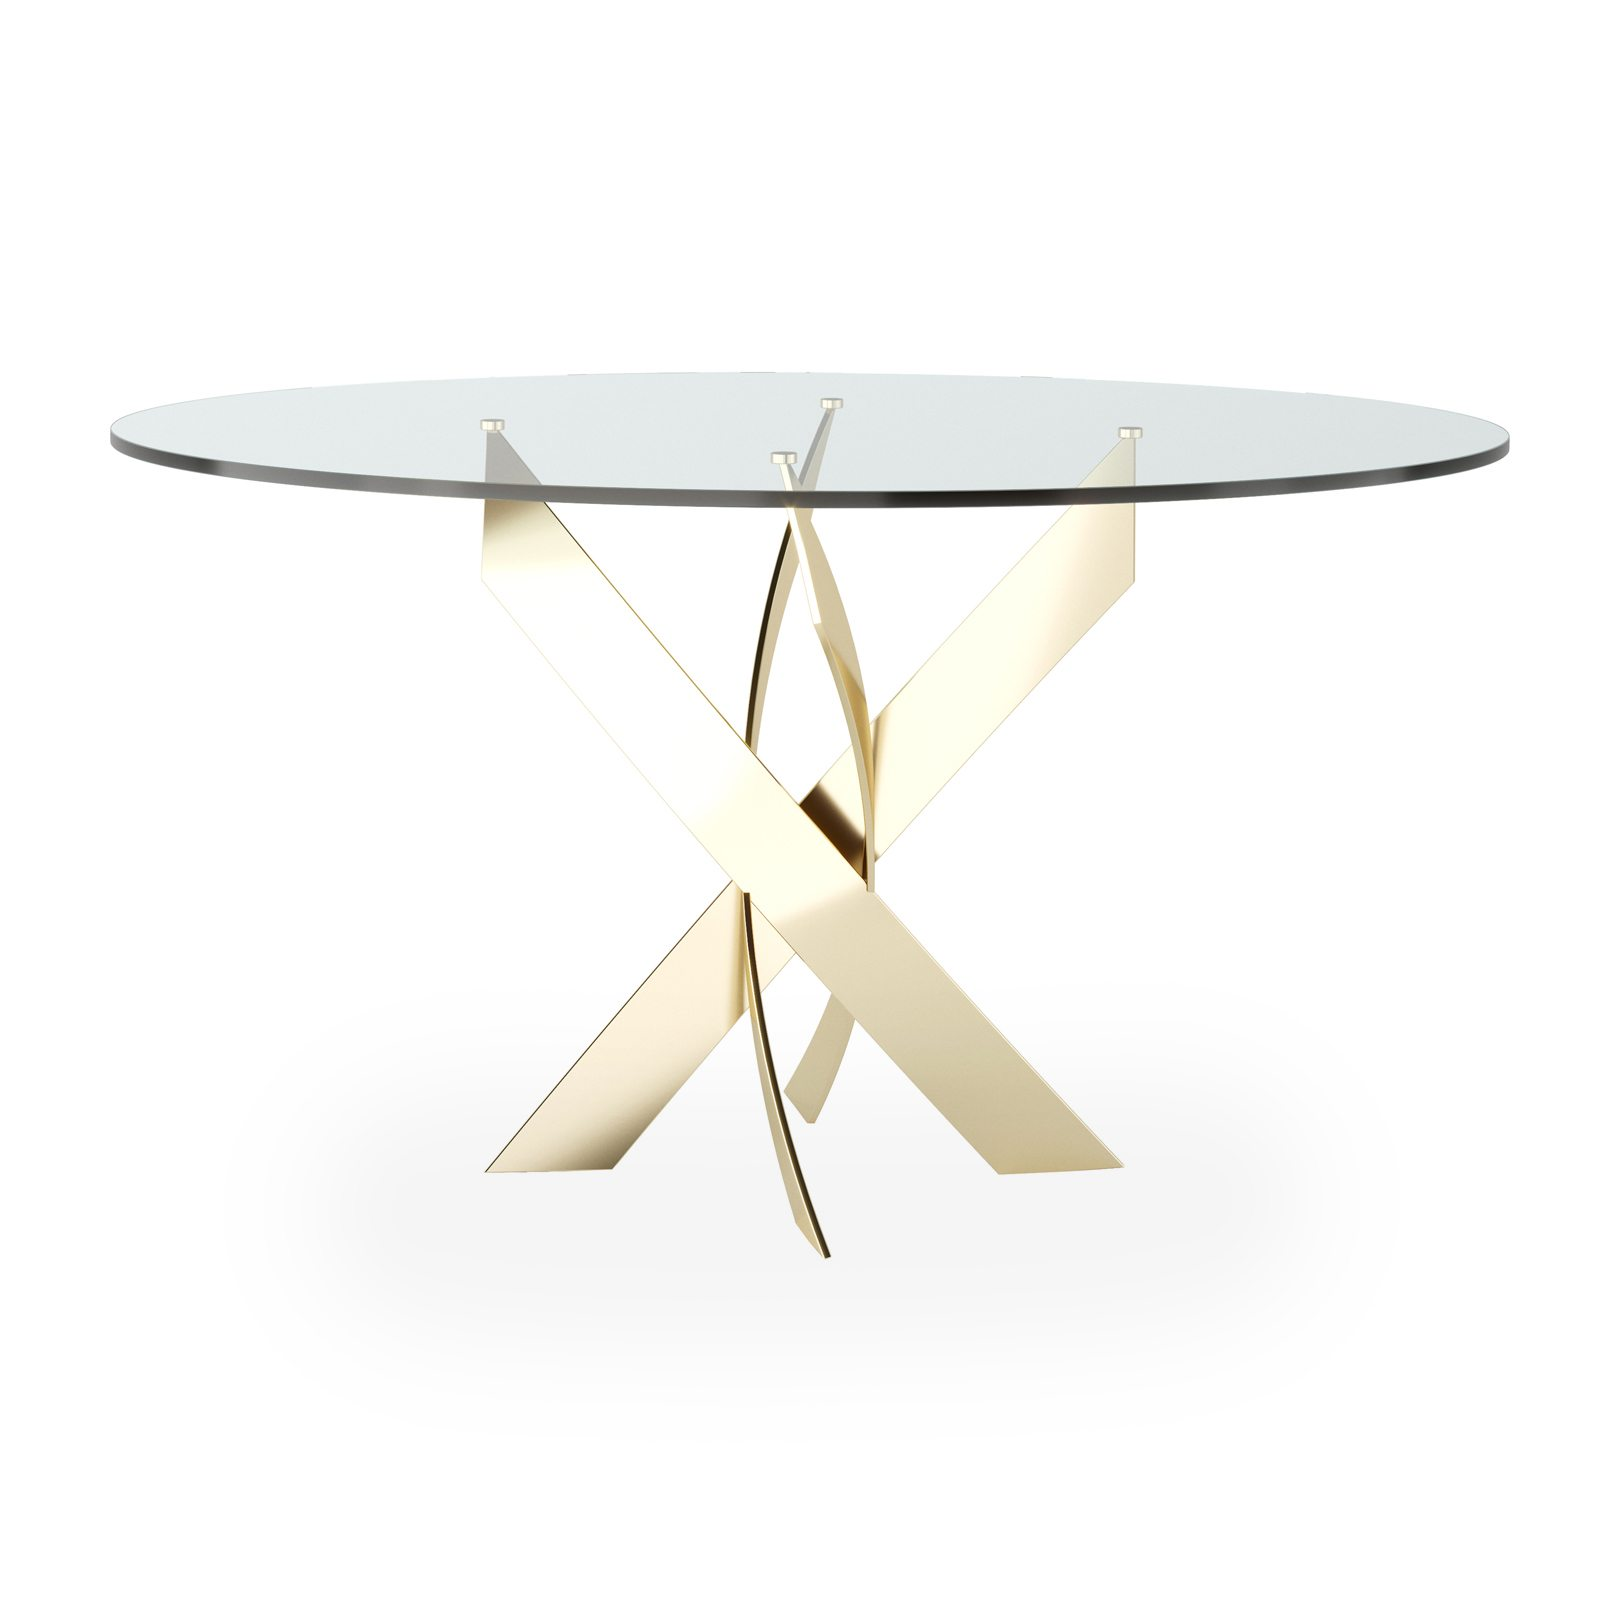 Helix-Dining-Table-Round-Brass-by-Bonham-&-Bonham-01